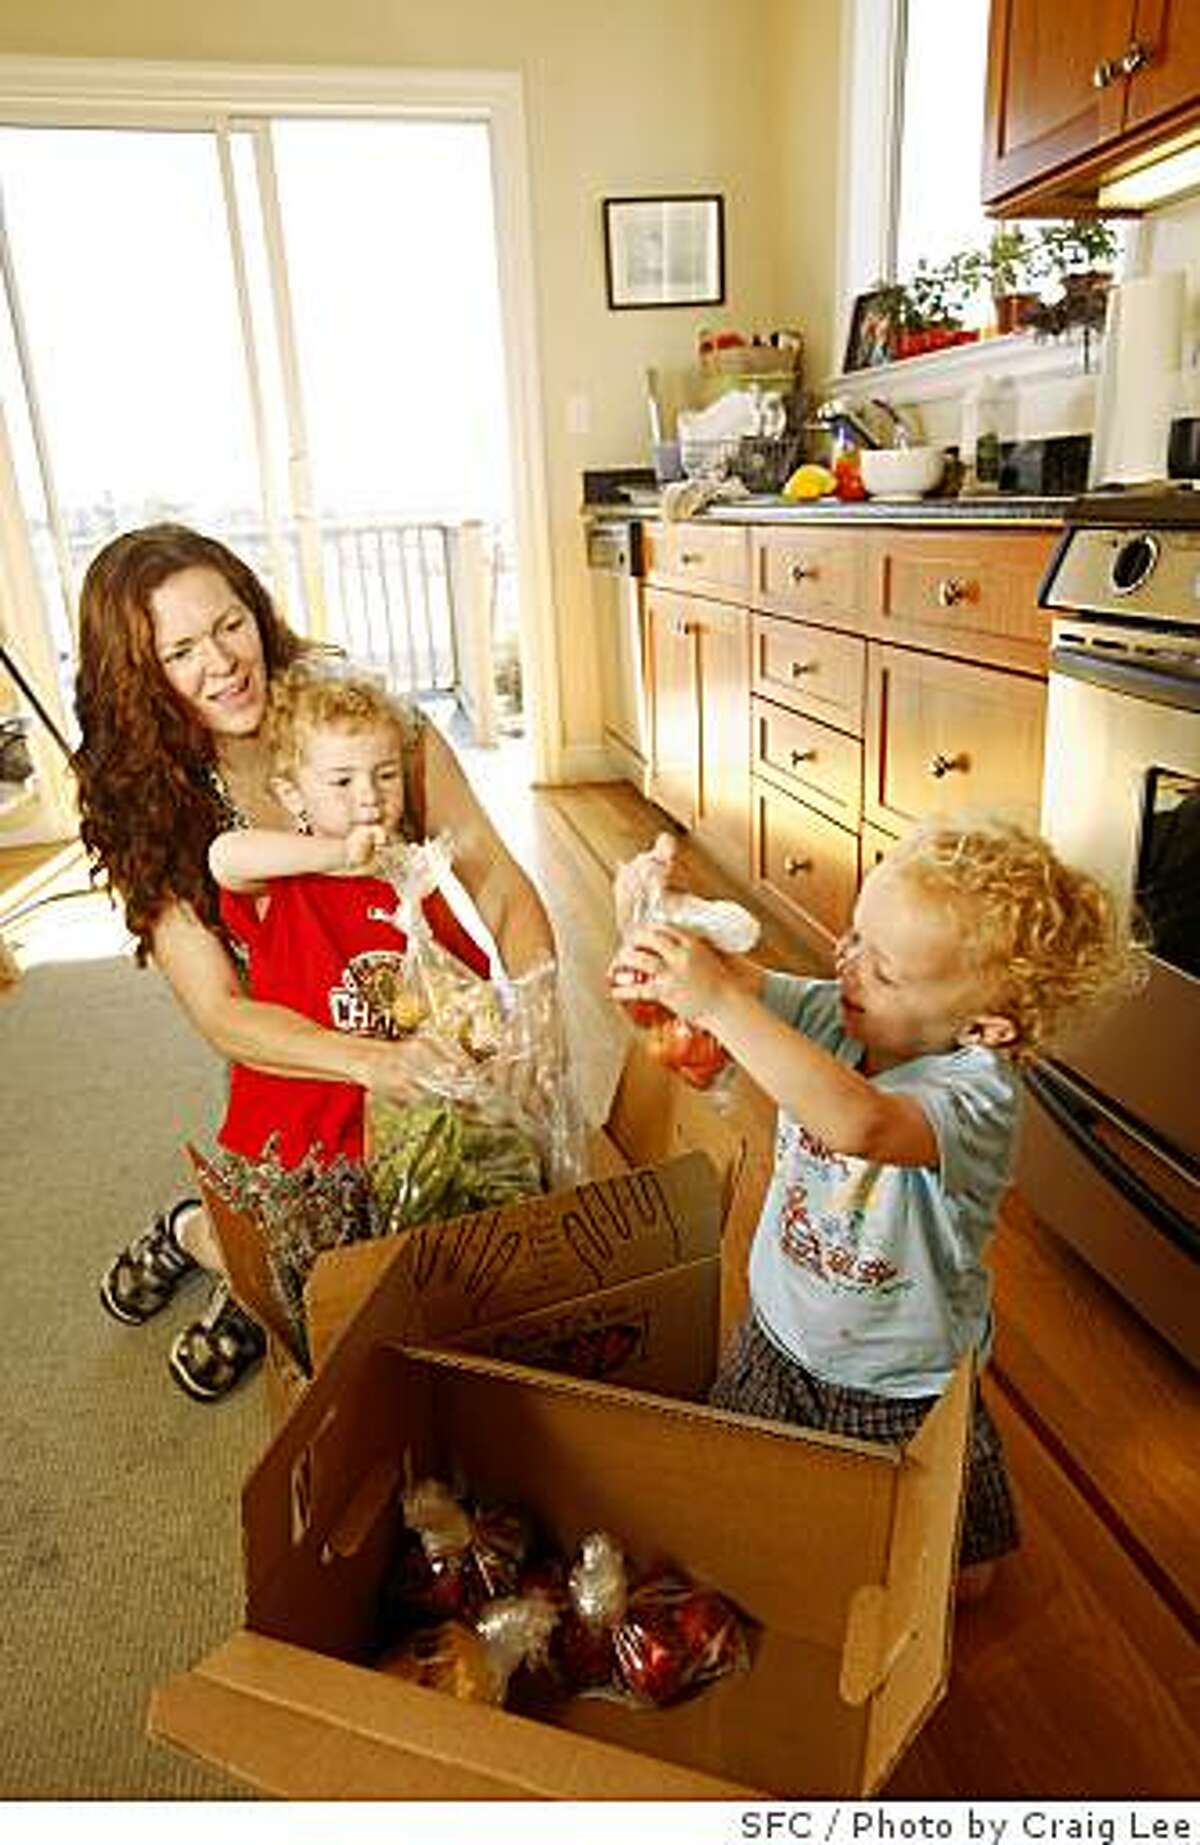 """Julie Caskey and her 2 year-old twin boys, Jonas Kra-Caskey (in front of Julie) and Jasper Kra-Caskey (right) looking over their box of fruits and vegetables delivered by Capay's """"Farm Fresh to You"""" in San Francisco, Calif., on June 18, 2008Photo by Craig Lee / The Chronicle"""